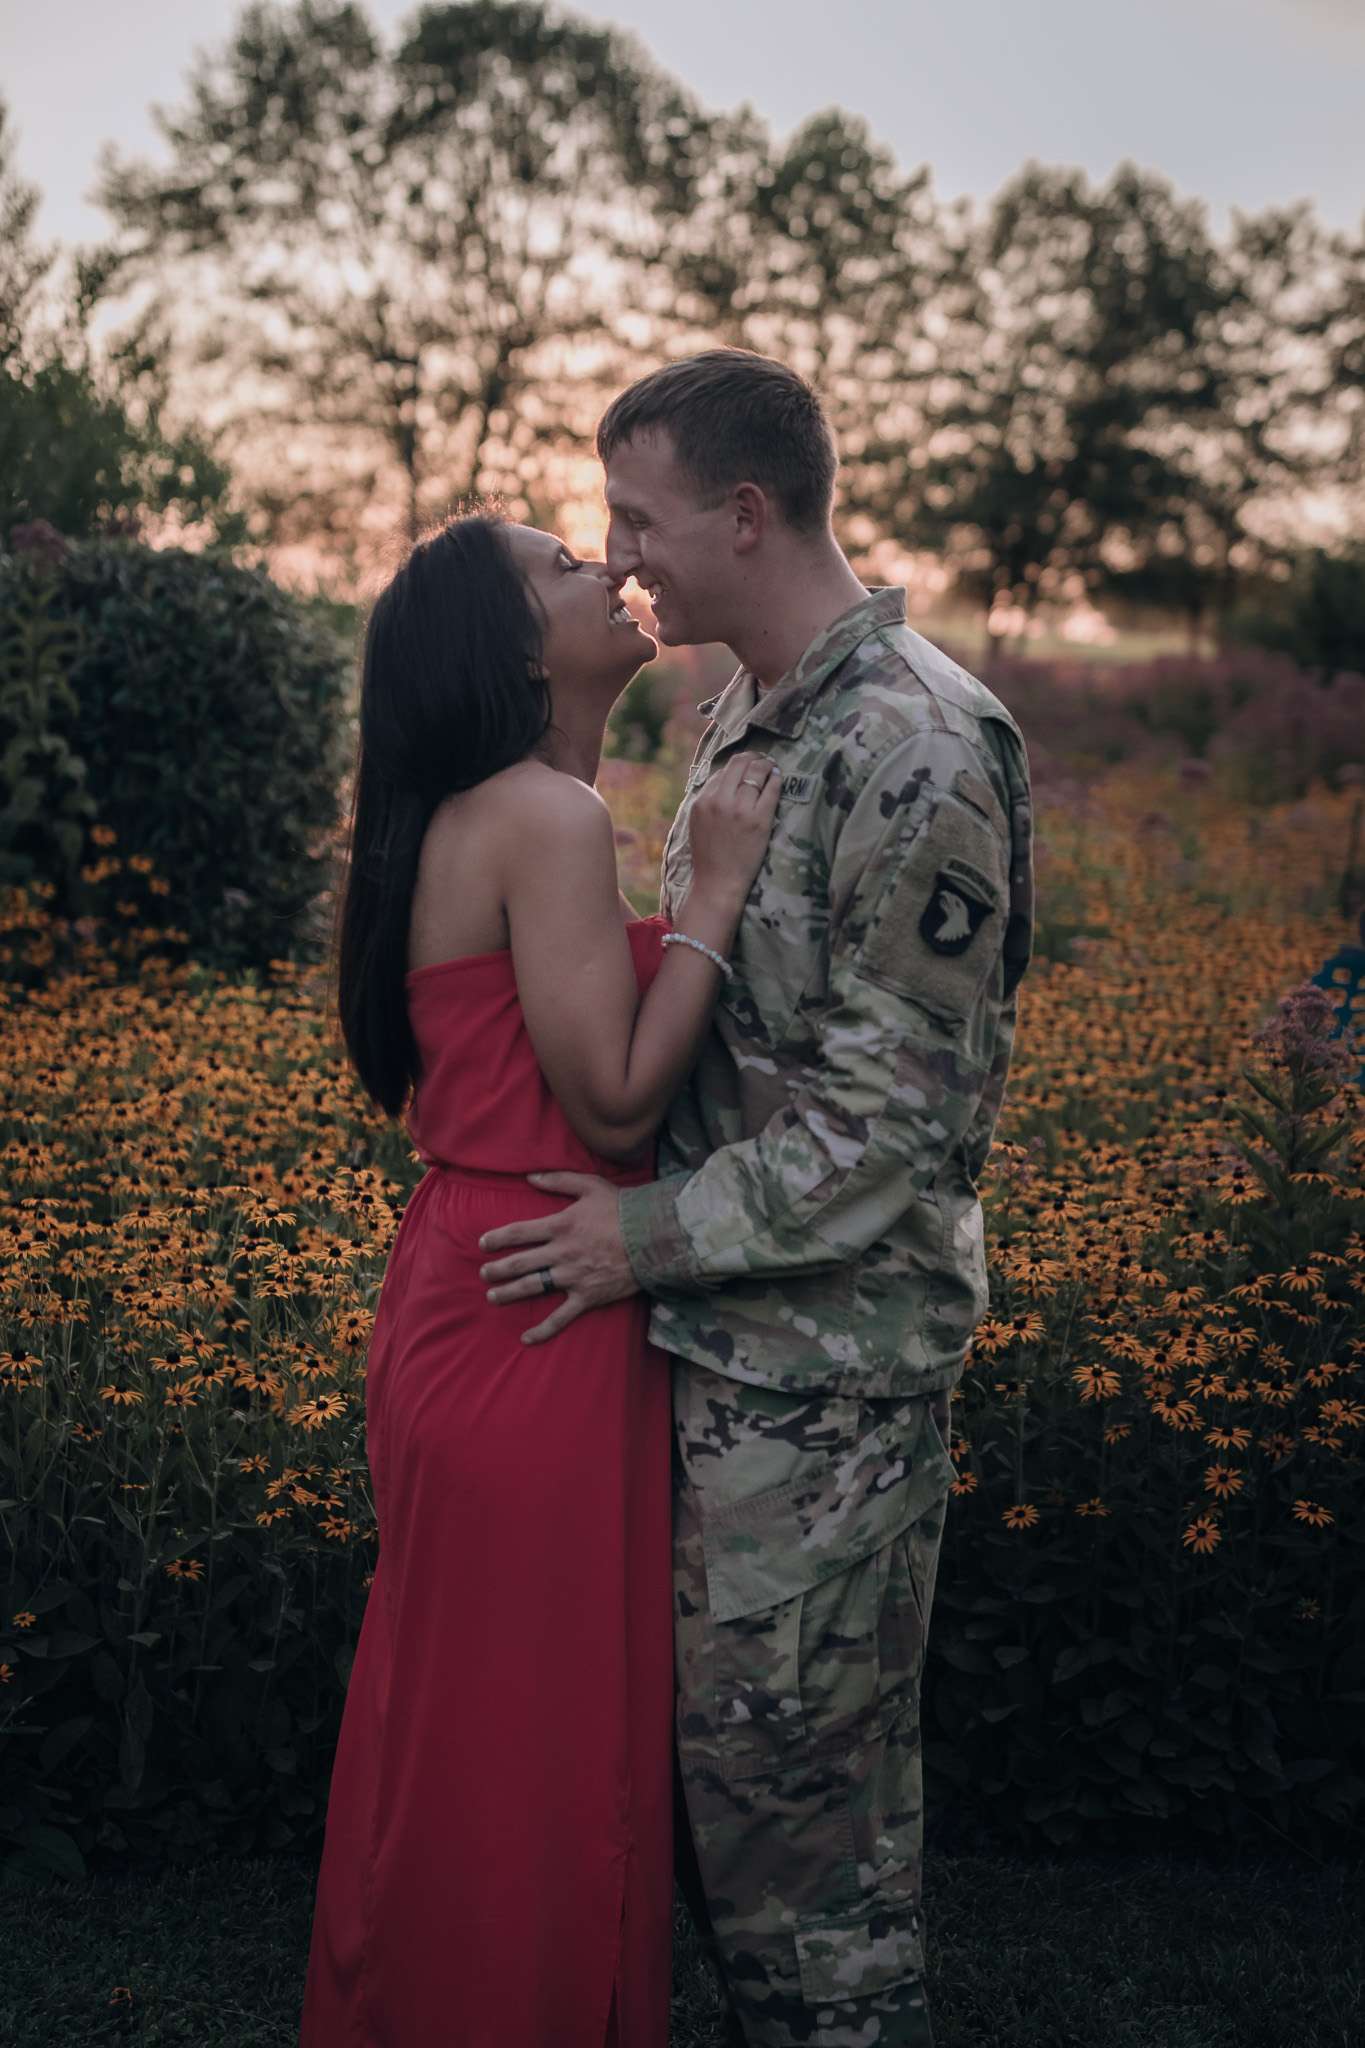 couple kissing at sunset in flowers